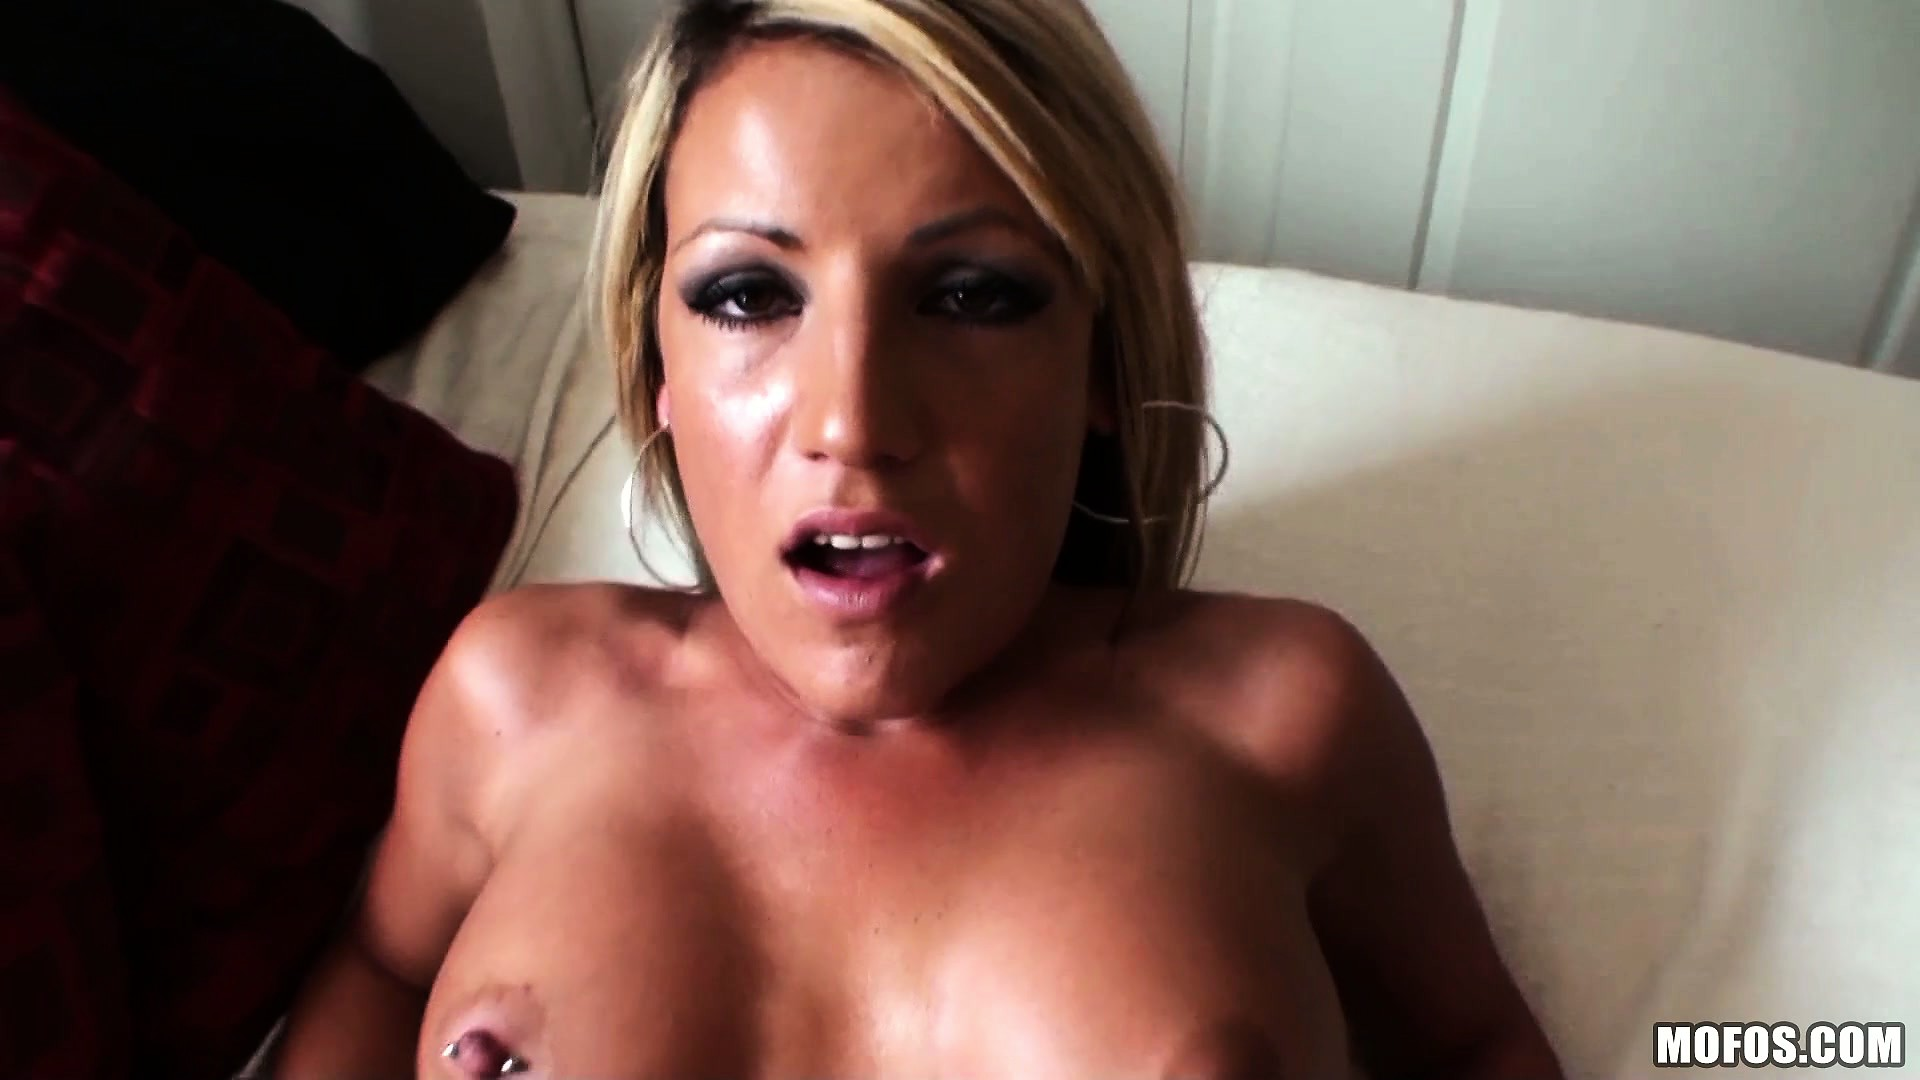 Porno Video of Blond Alt Babe With Pierced Nipples Filmed Fucking Like Crazy